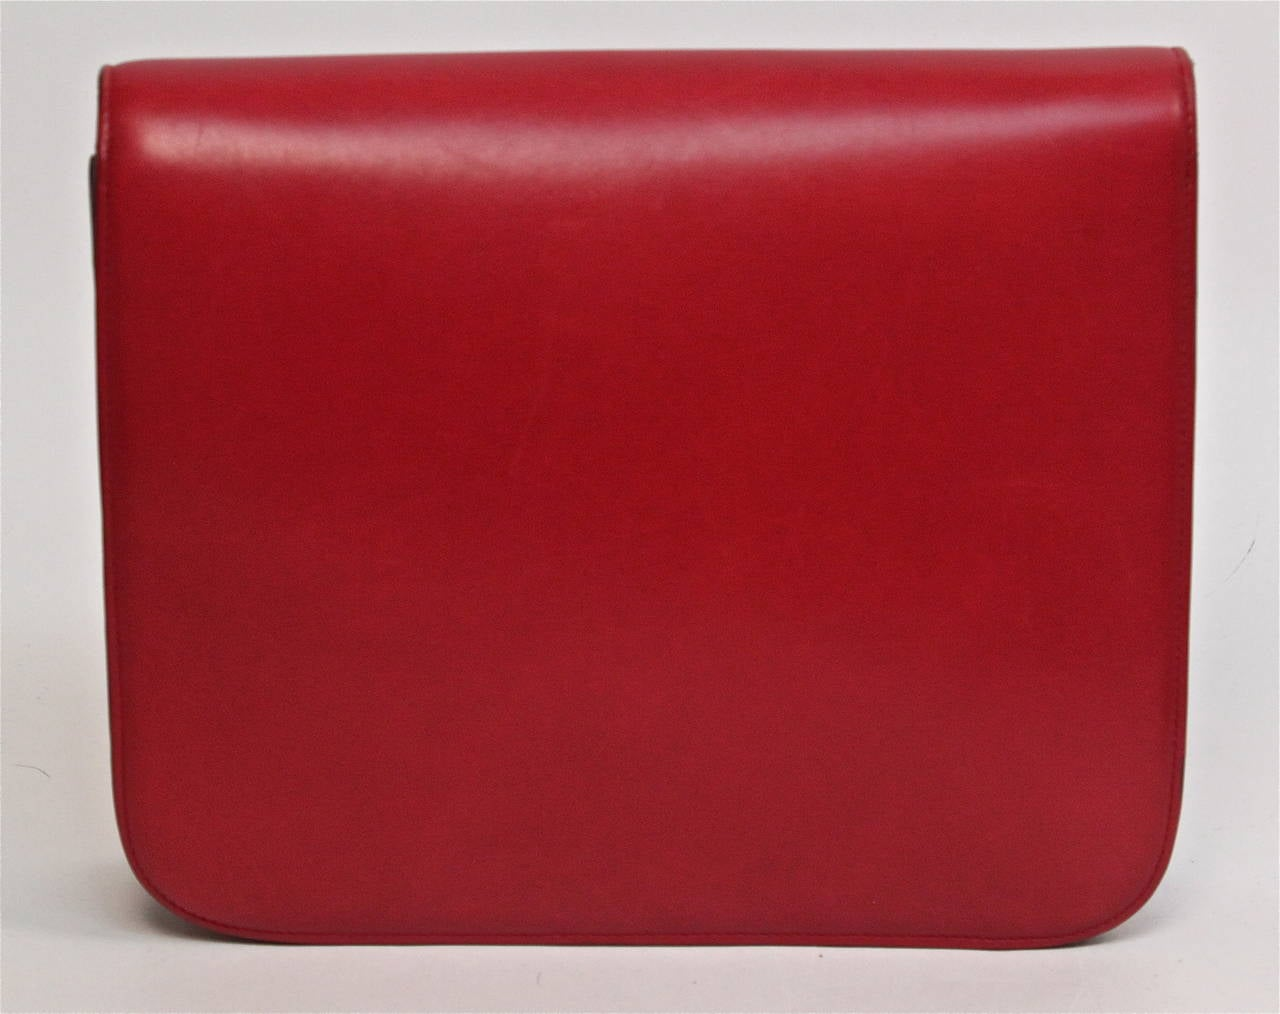 Celine large red classic box leather bag with convertible strap  In Excellent Condition For Sale In San Fransisco, CA